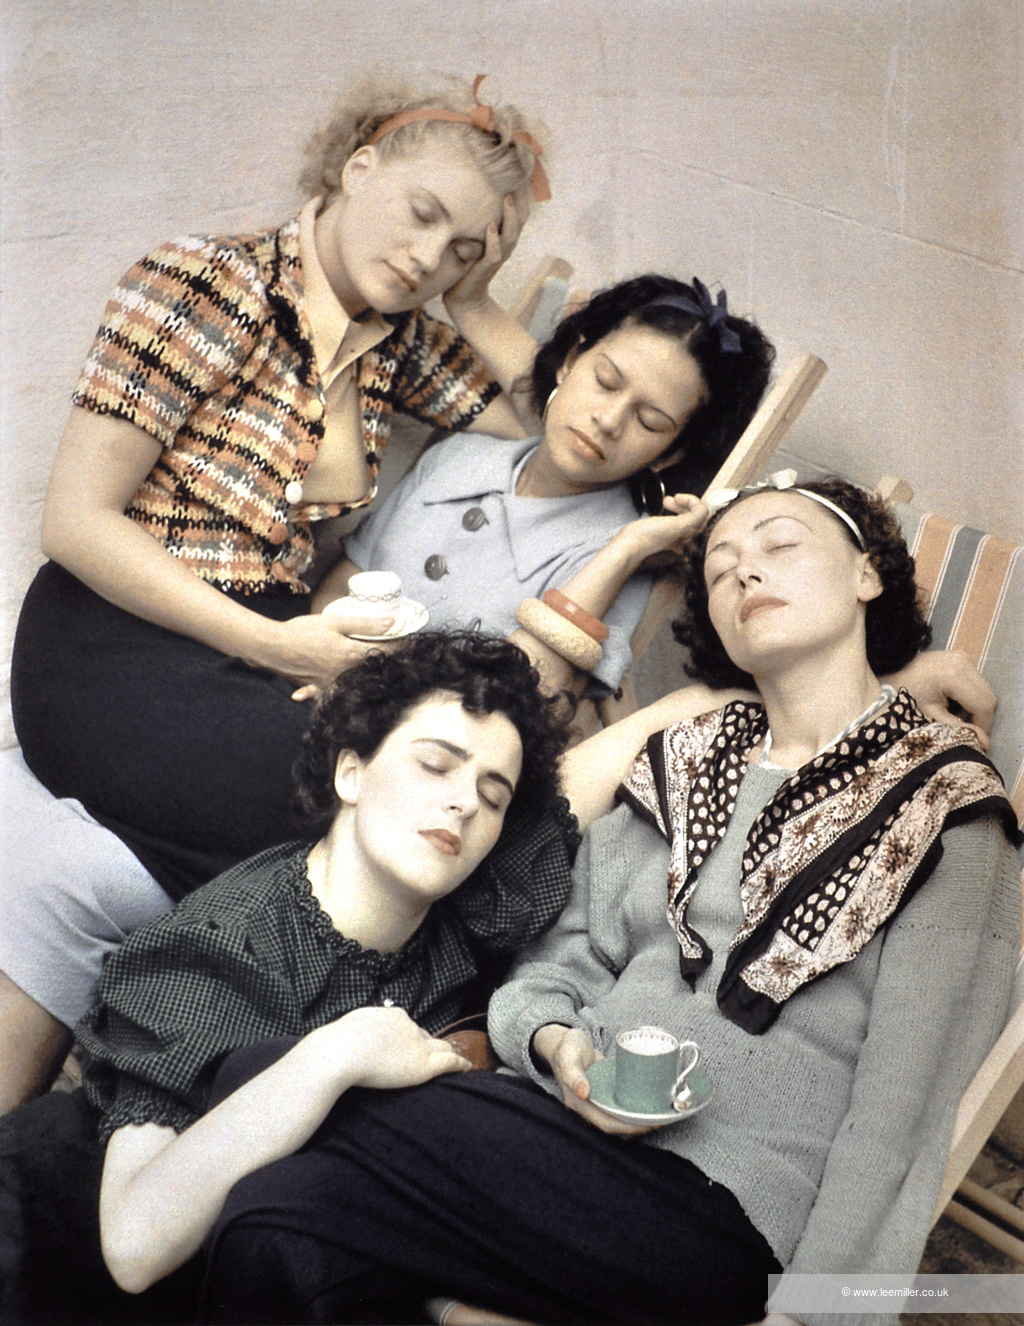 Roland Penrose, Four Women Asleep (Lee Miller, Adrienne Fidelin, Nusch Eluard, and Leonora Carrington, 1937).